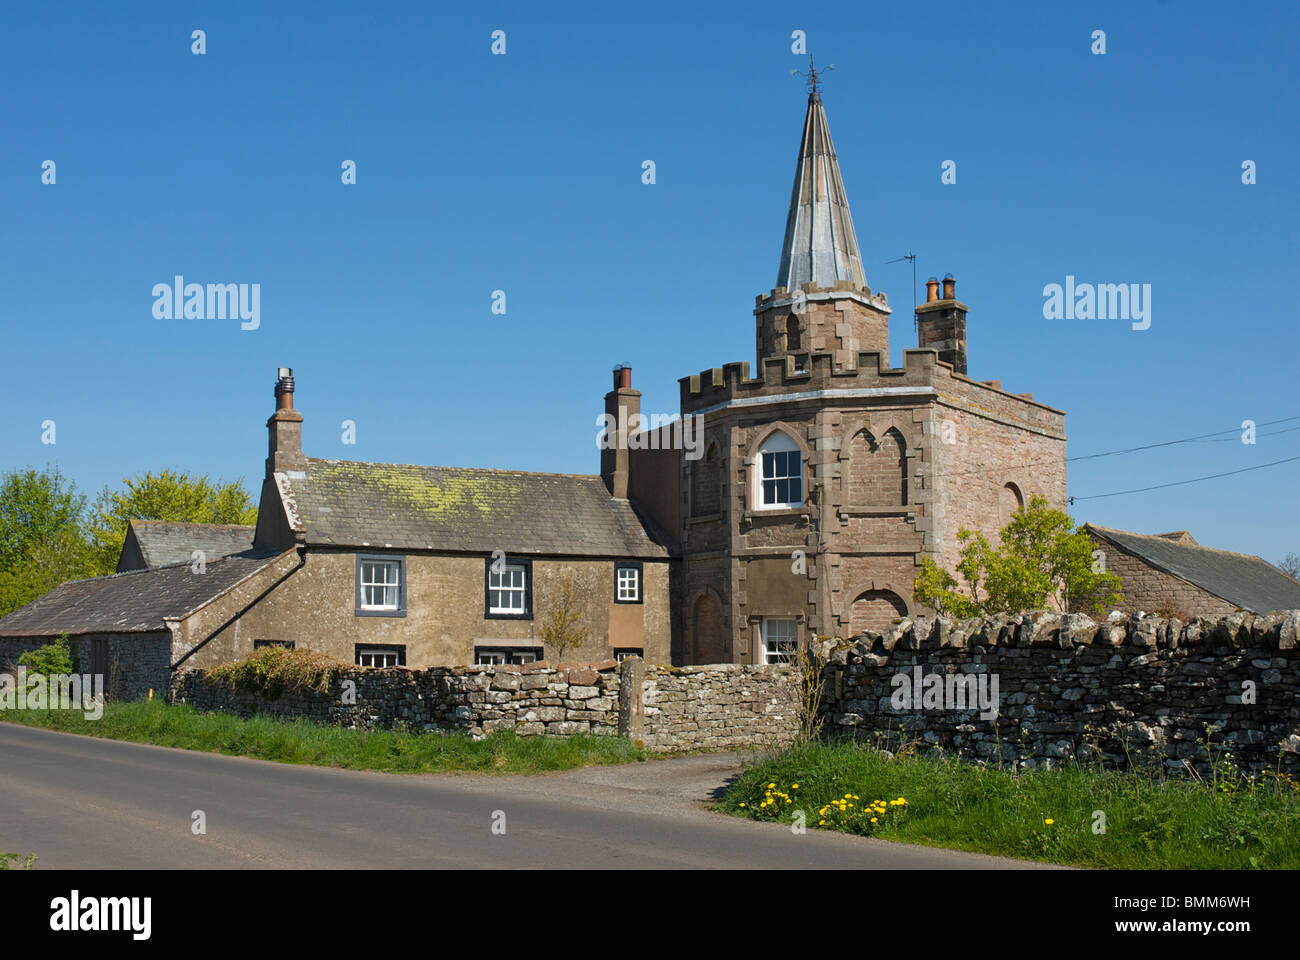 Spire House, a 'folly' built about 1780, near Greystoke, Cumbria, England UK - Stock Image